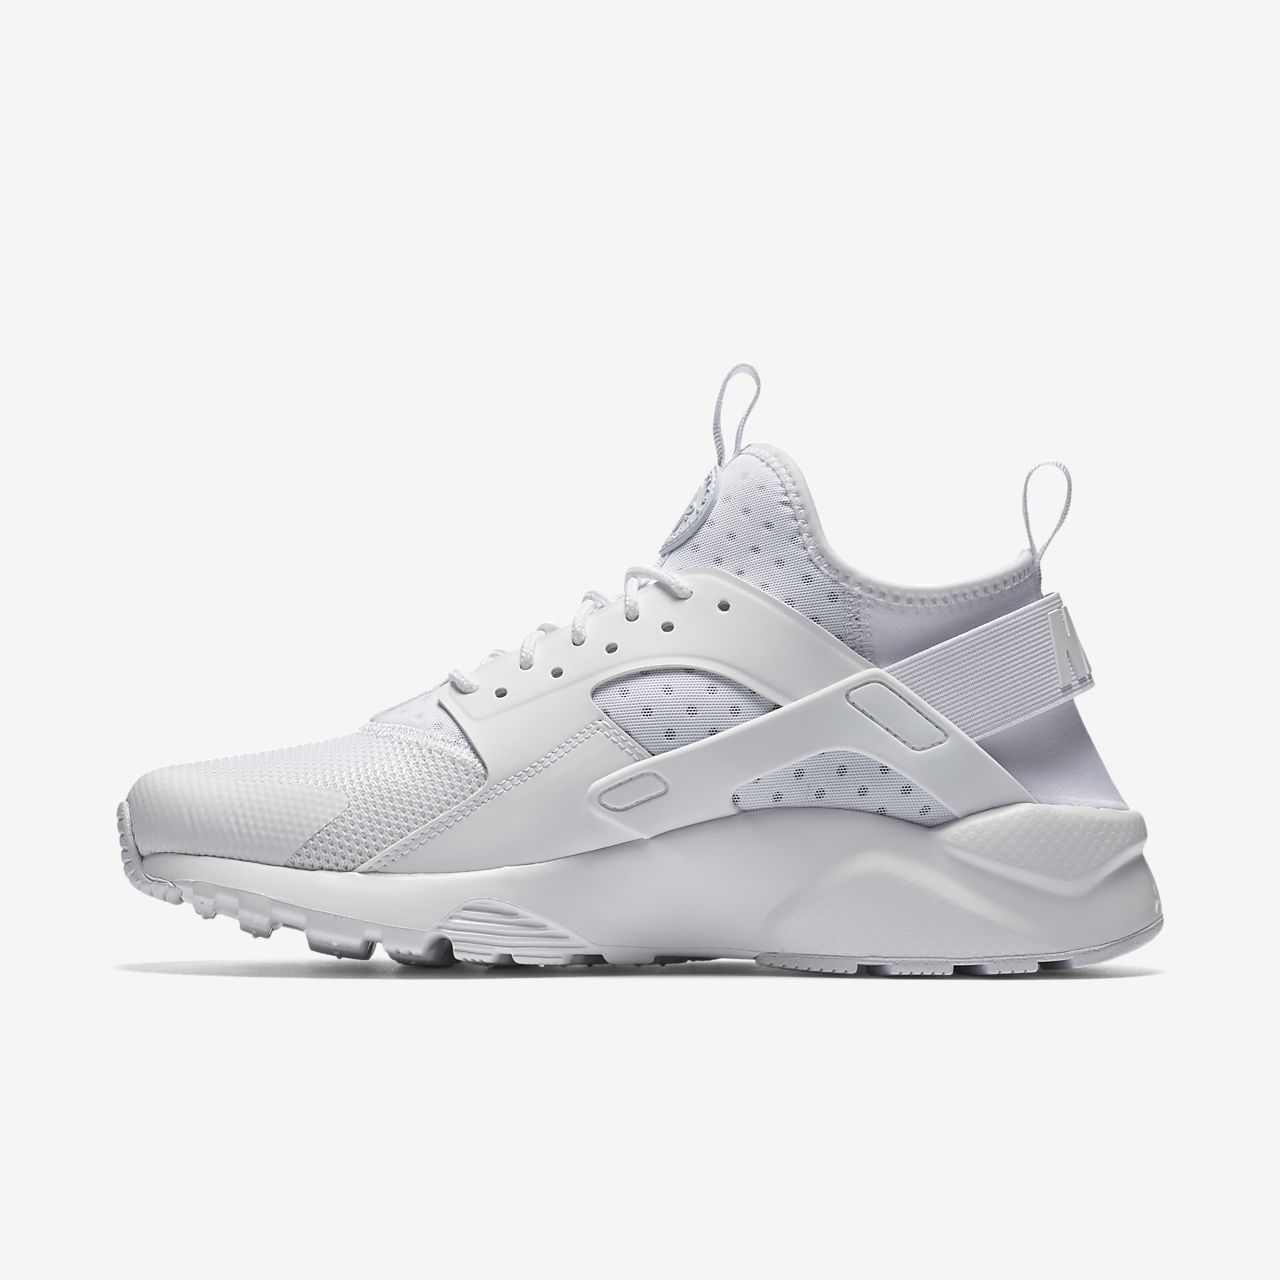 72c942f4a2a3e Nike Air Huarache Ultra Men s Shoe. Nike.com CA